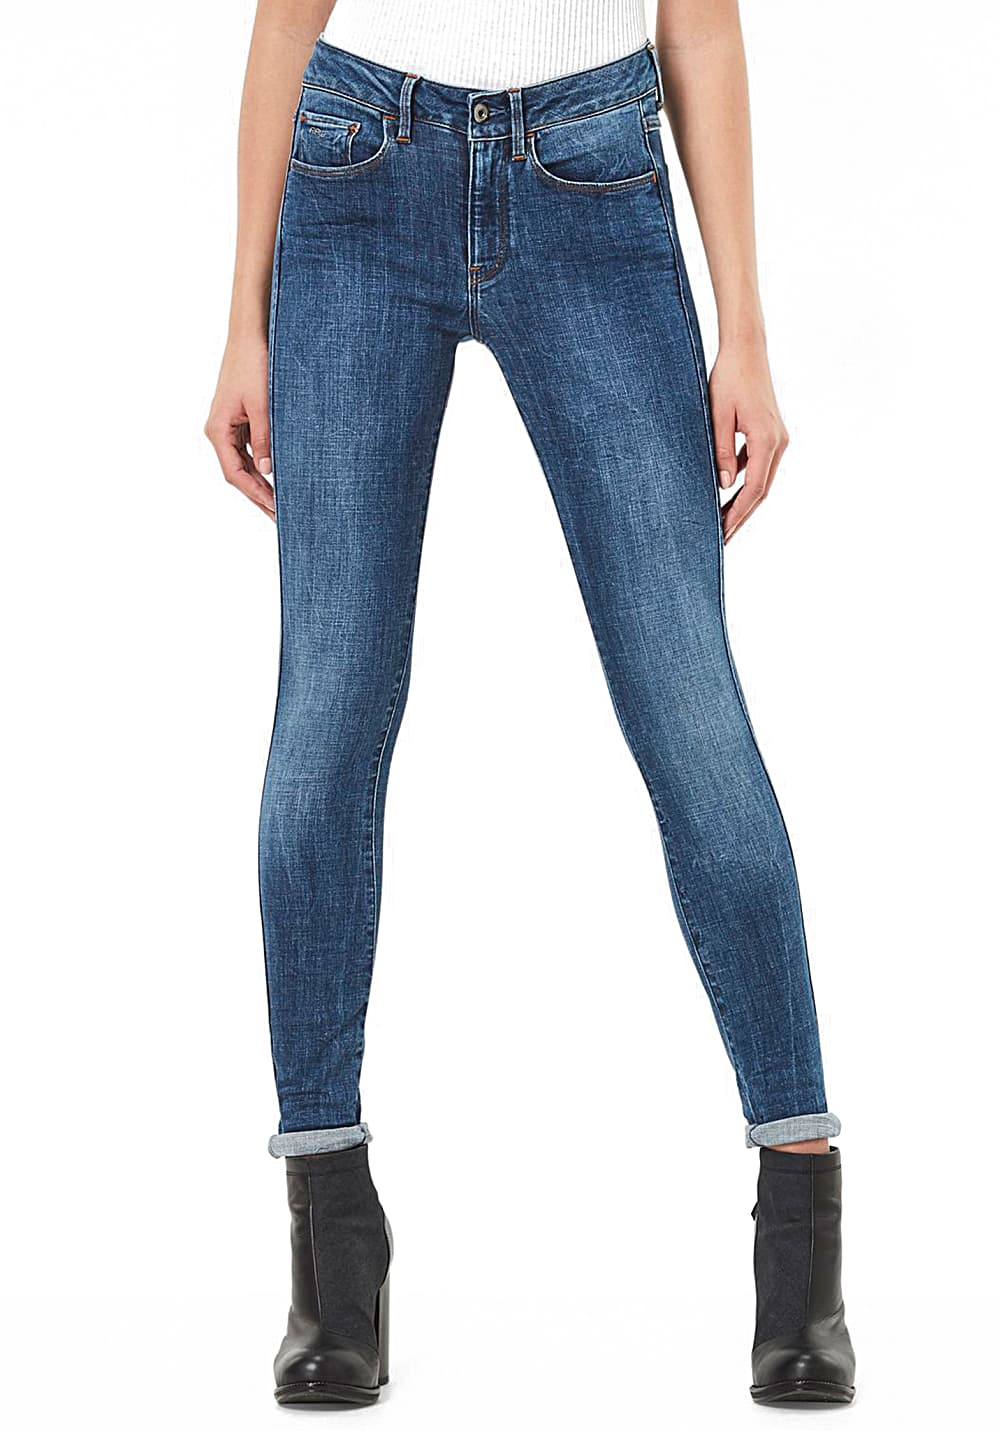 Hosen - G STAR RAW 3301 D Mid Waist Skinny Jeans für Damen Blau  - Onlineshop Planet Sports